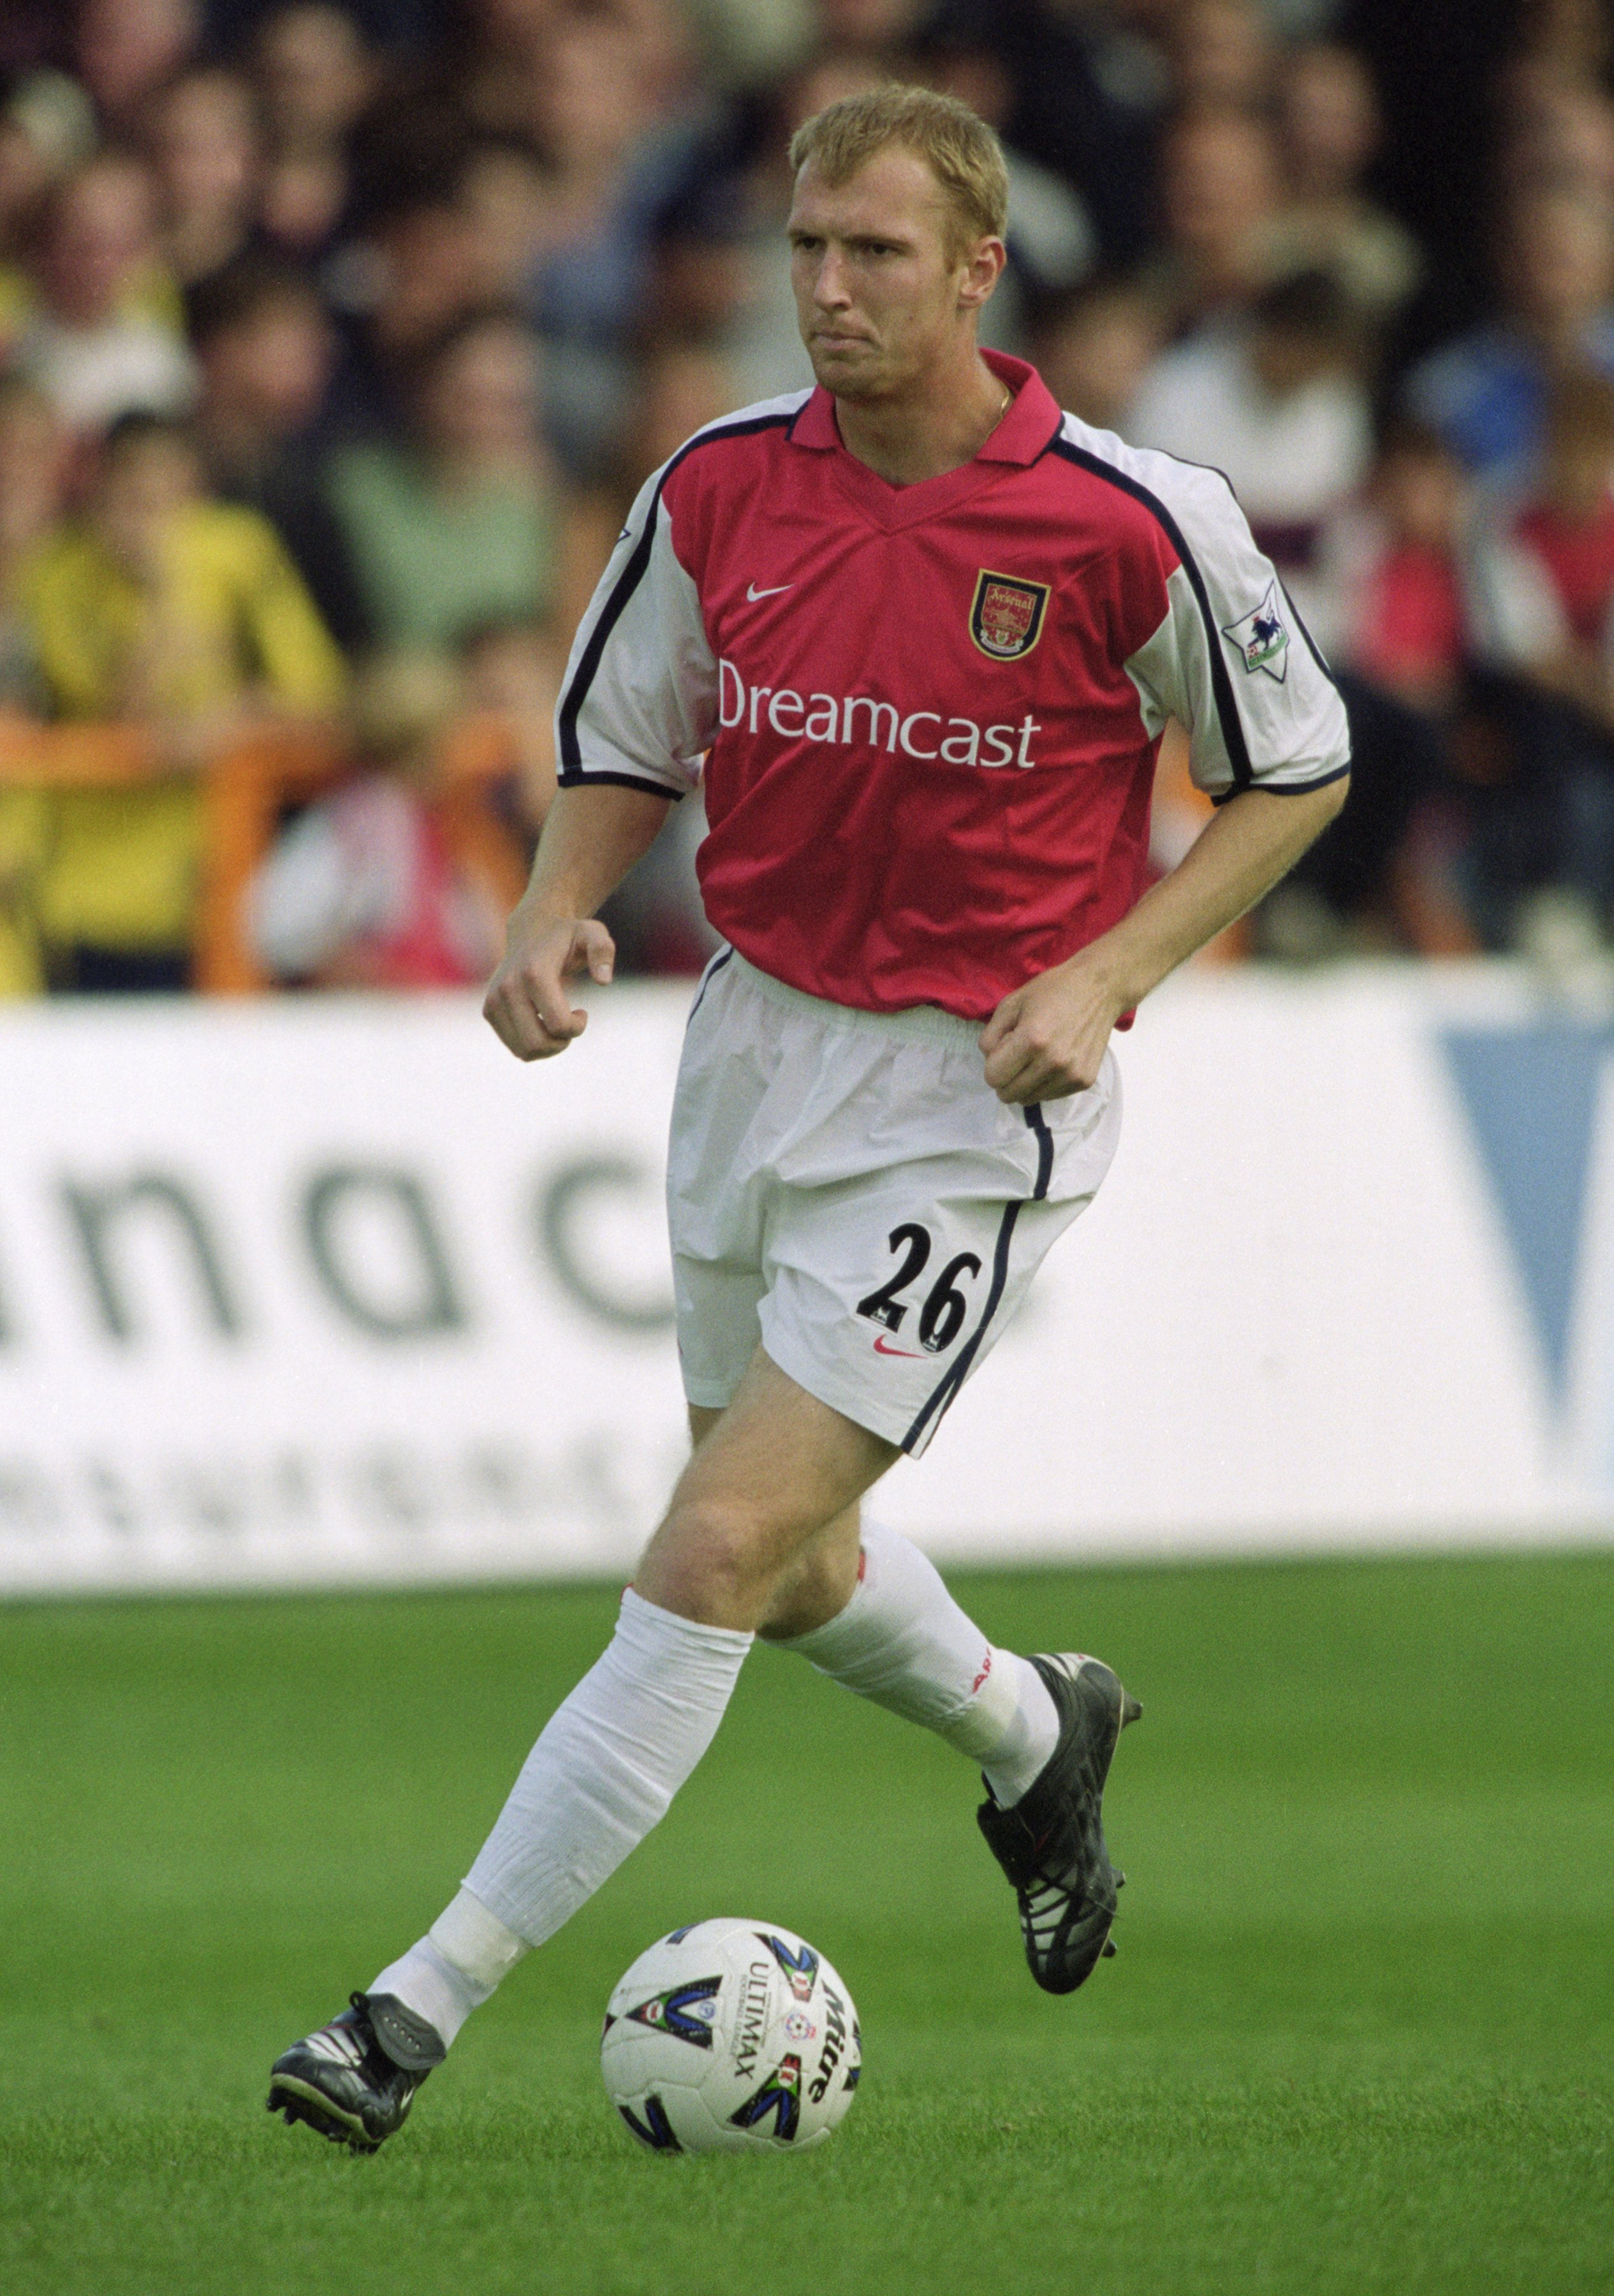 11 Aug 2001:  Igor Stepanovs of Arsenal on the ball during the Pre-season friendly match against Barnet played at Underhill in London. \ Mandatory Credit: Ben Radford /Allsport